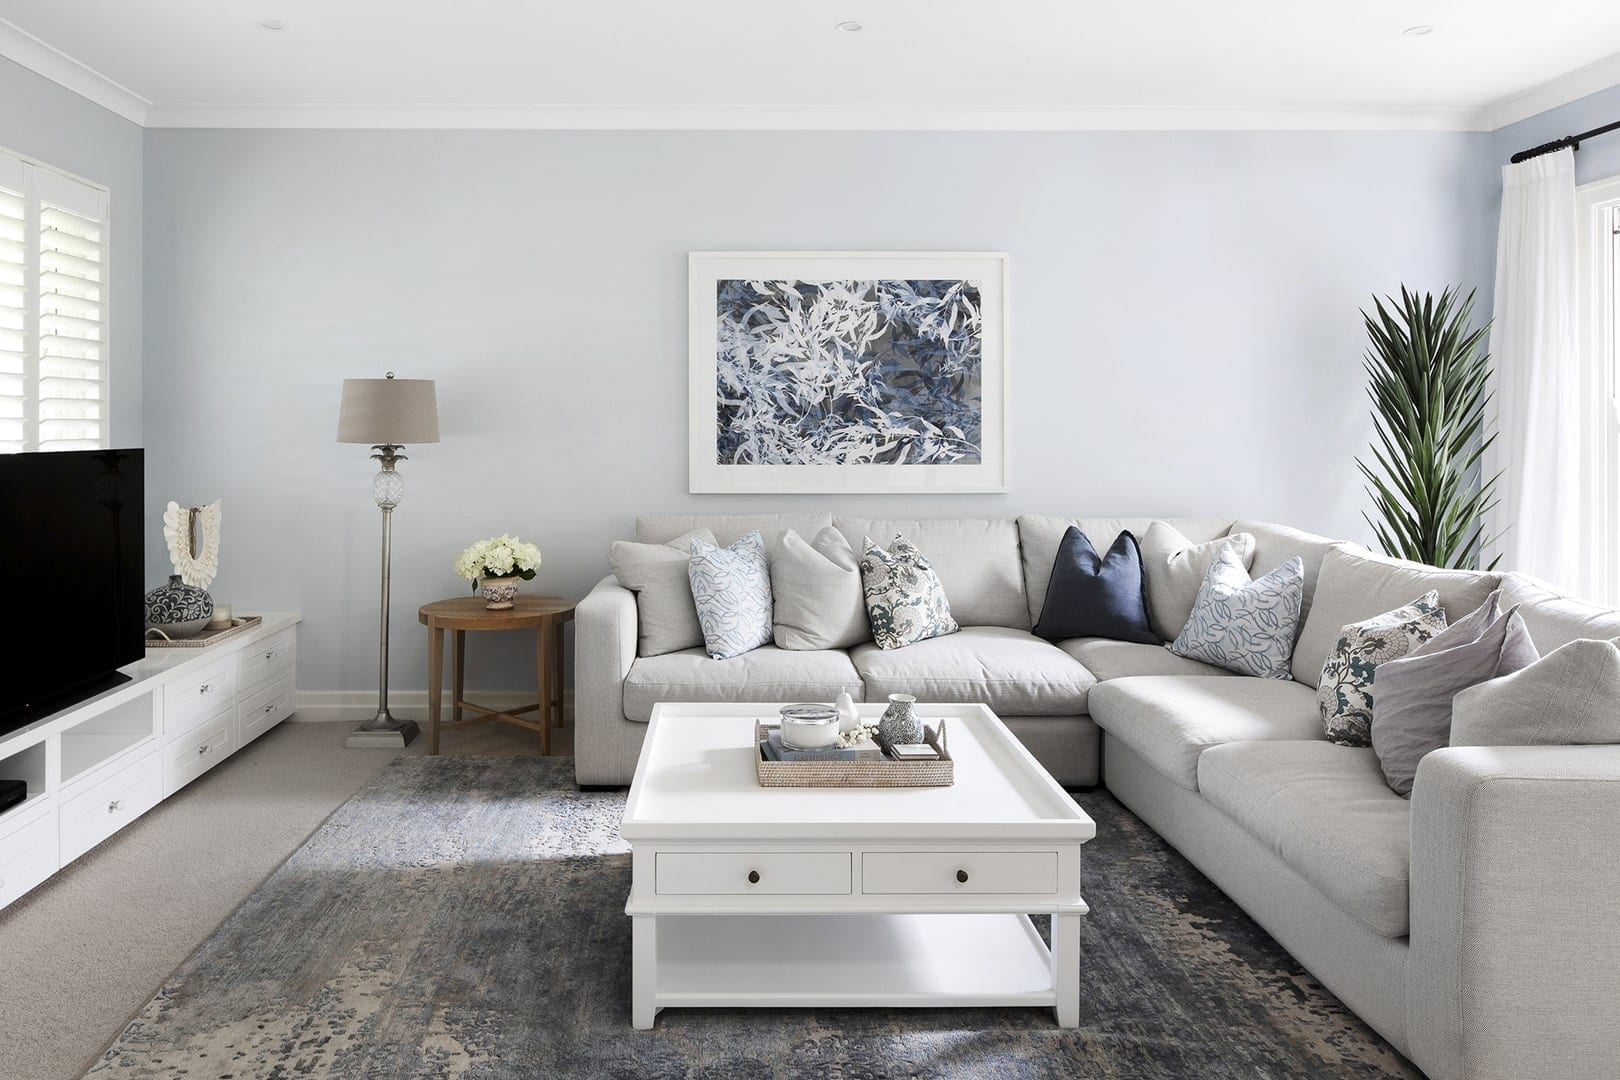 classic hamptons interior design scheme living room with light blue walls and cream sectional sofa